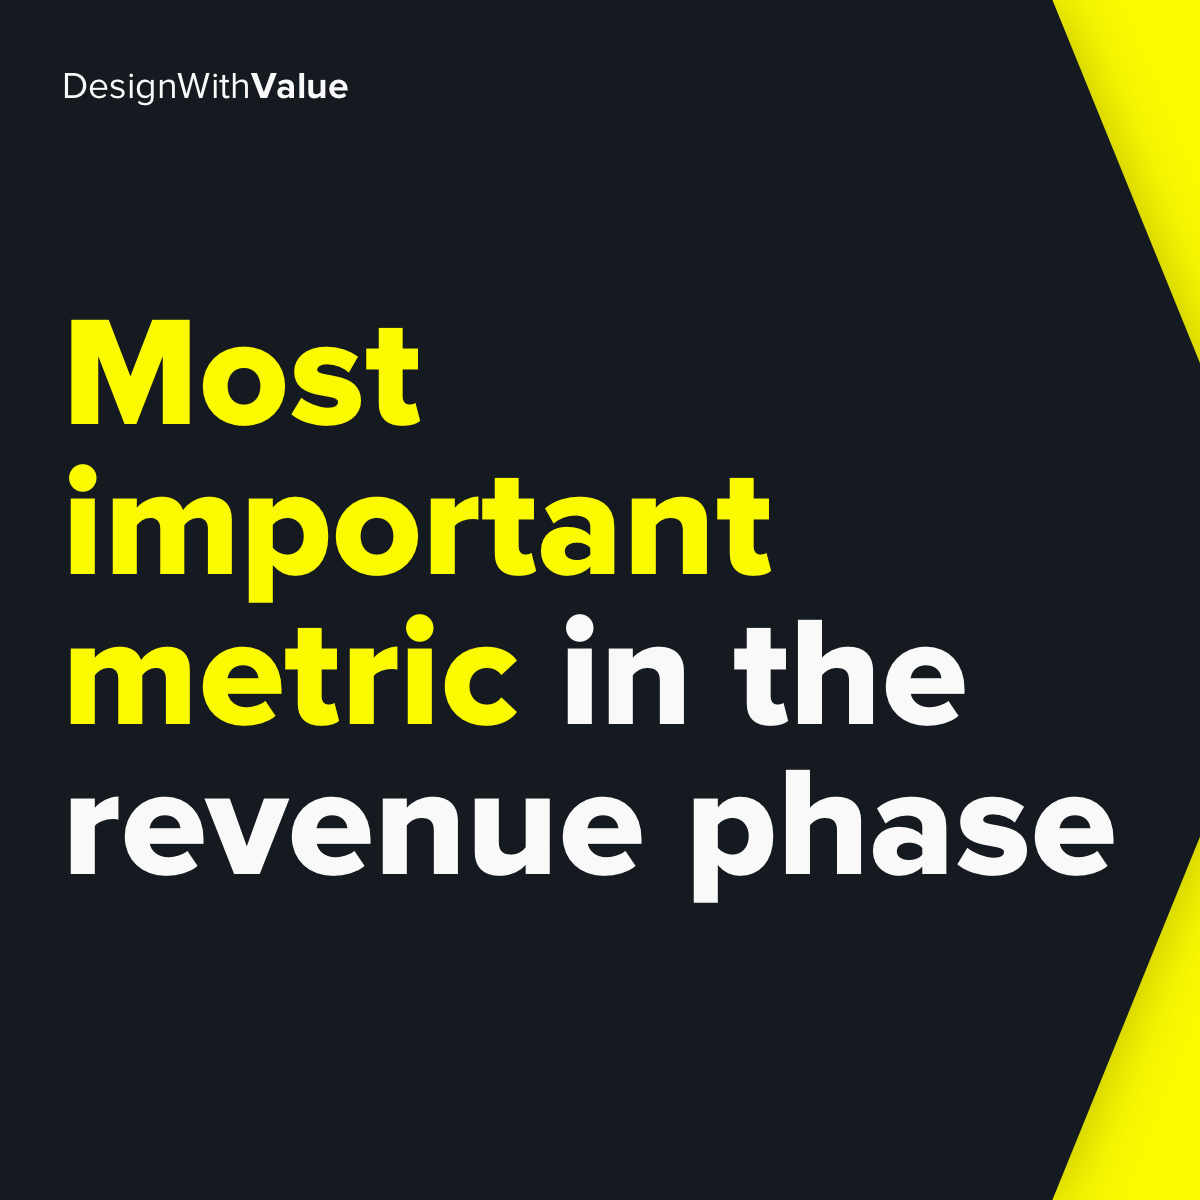 Most important metric in the revenue phase...